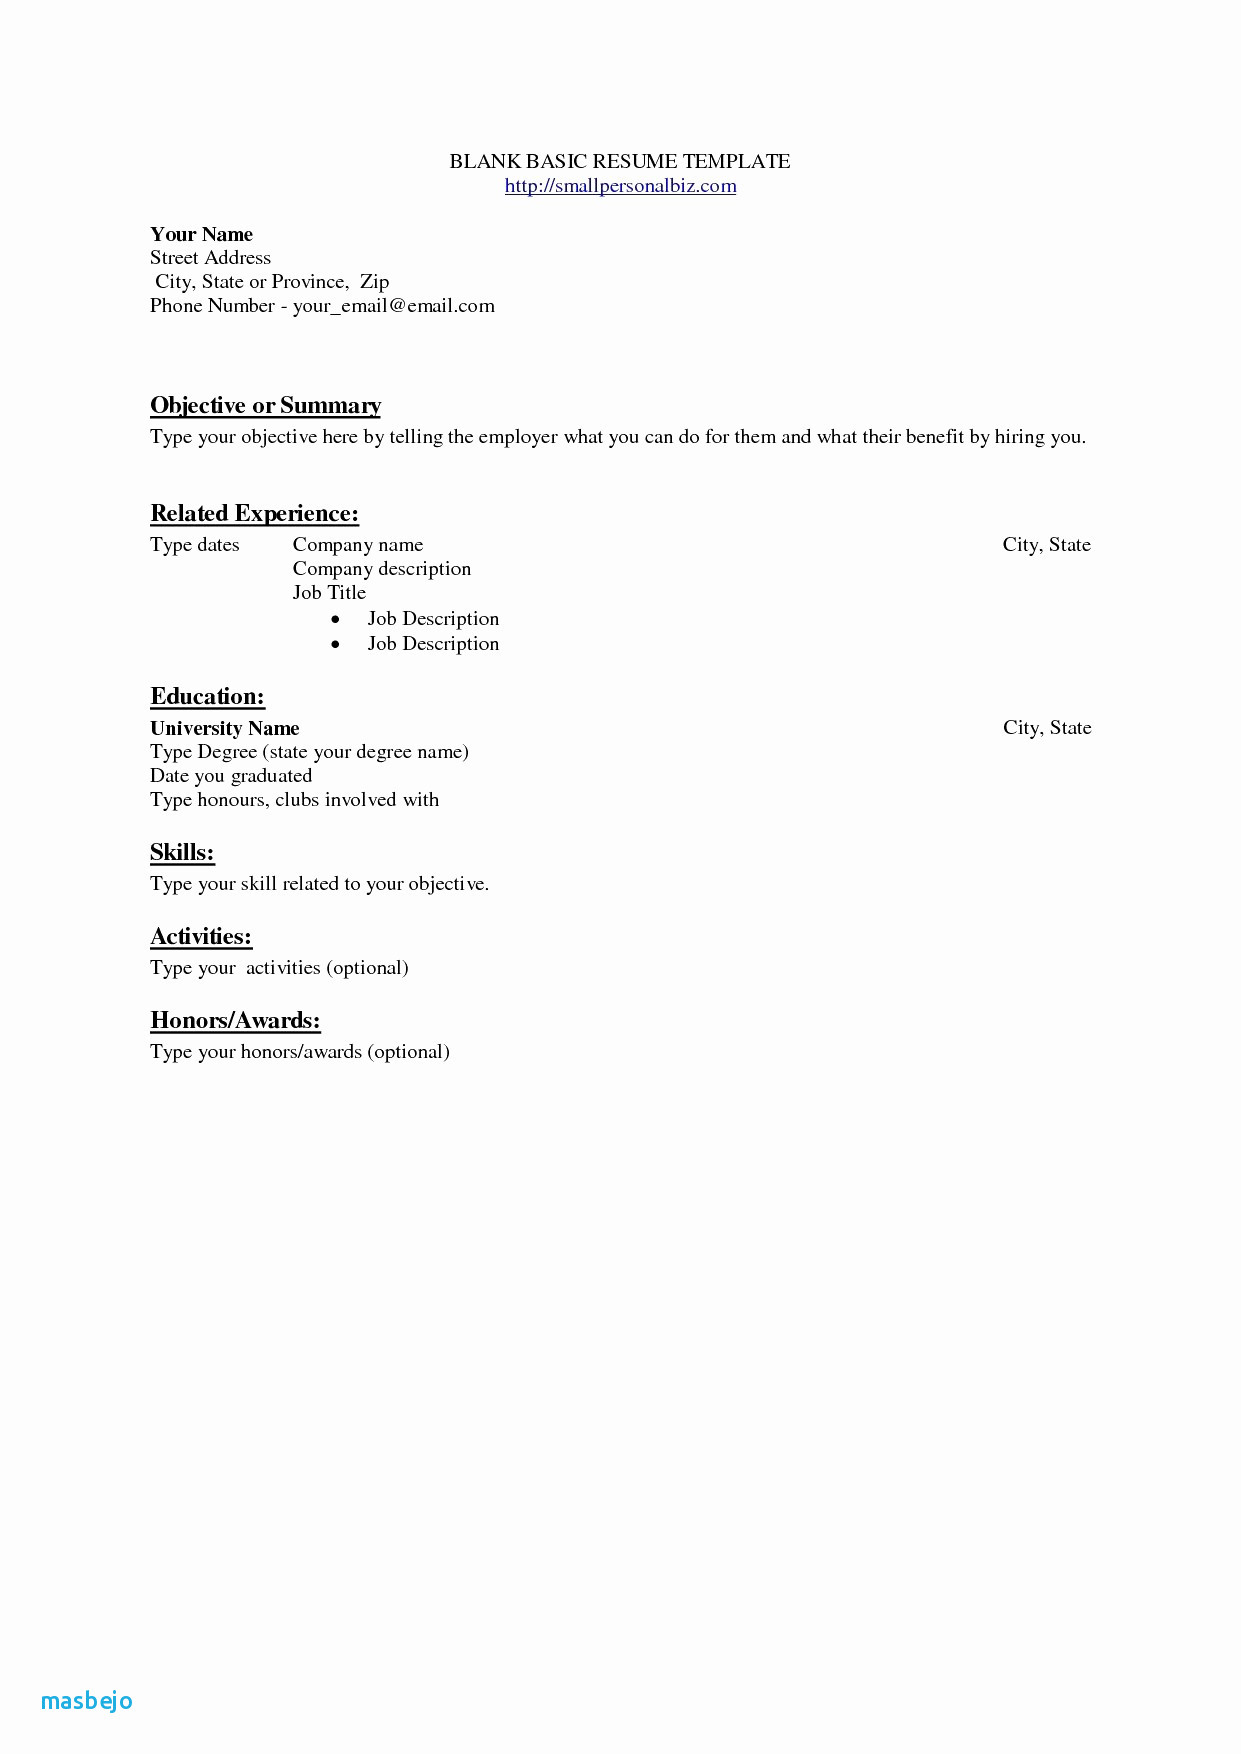 Resume Template Linkedin - Linkedin Resume Unique Experienced Rn Resume Fresh Nurse Resume 0d